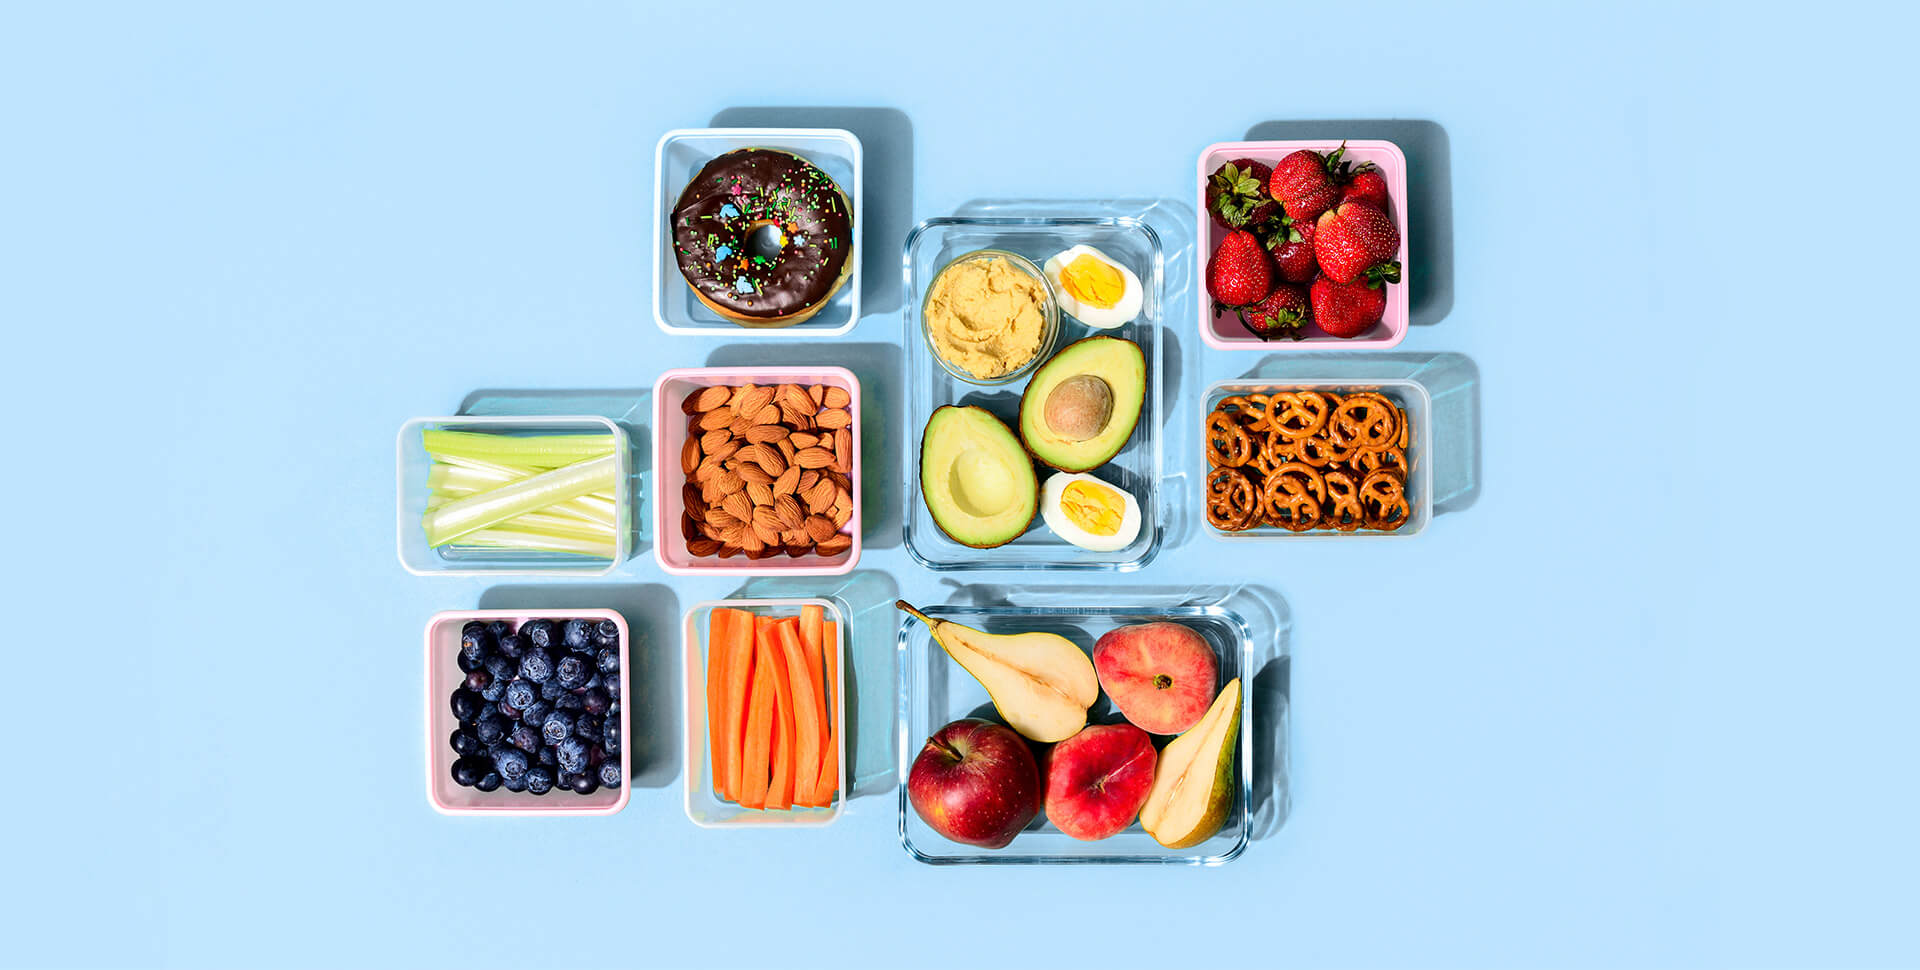 Various types of snacks in reusable containers against a light blue background